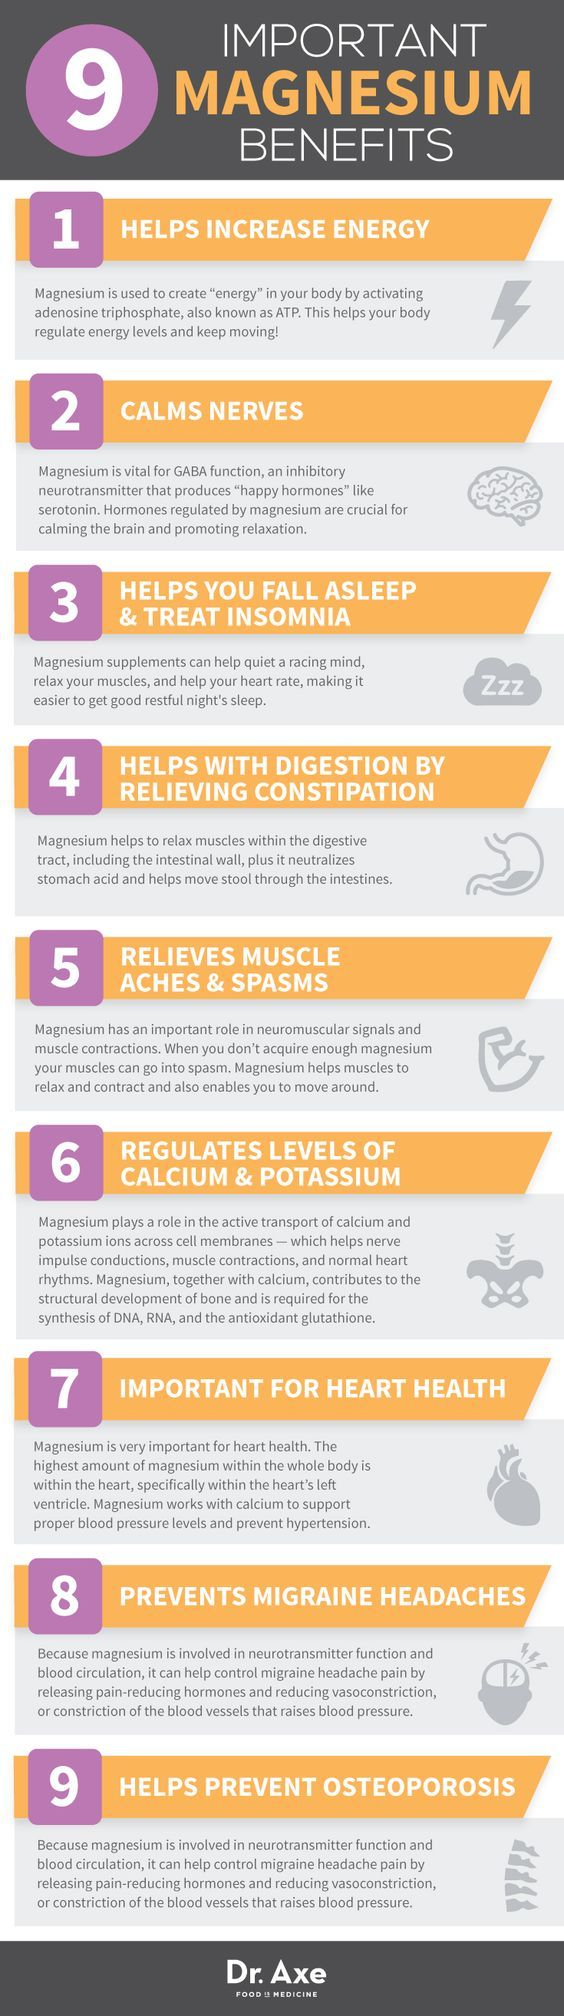 Magnesium Benefits - I was having horrible issues after my surgery and cancer recovery, at first we thought they were related to thyroid function but all my tests were getting better, though my symptoms were not. After many blood test for all kinds of things, it turns out I have a magnesium deficiency. It took quite a few weeks to get my levels back up but once they were, most of my problems were relieved; most of all my muscle aches, exhaustion and restless sleep. On the up and up. :) ~Leah